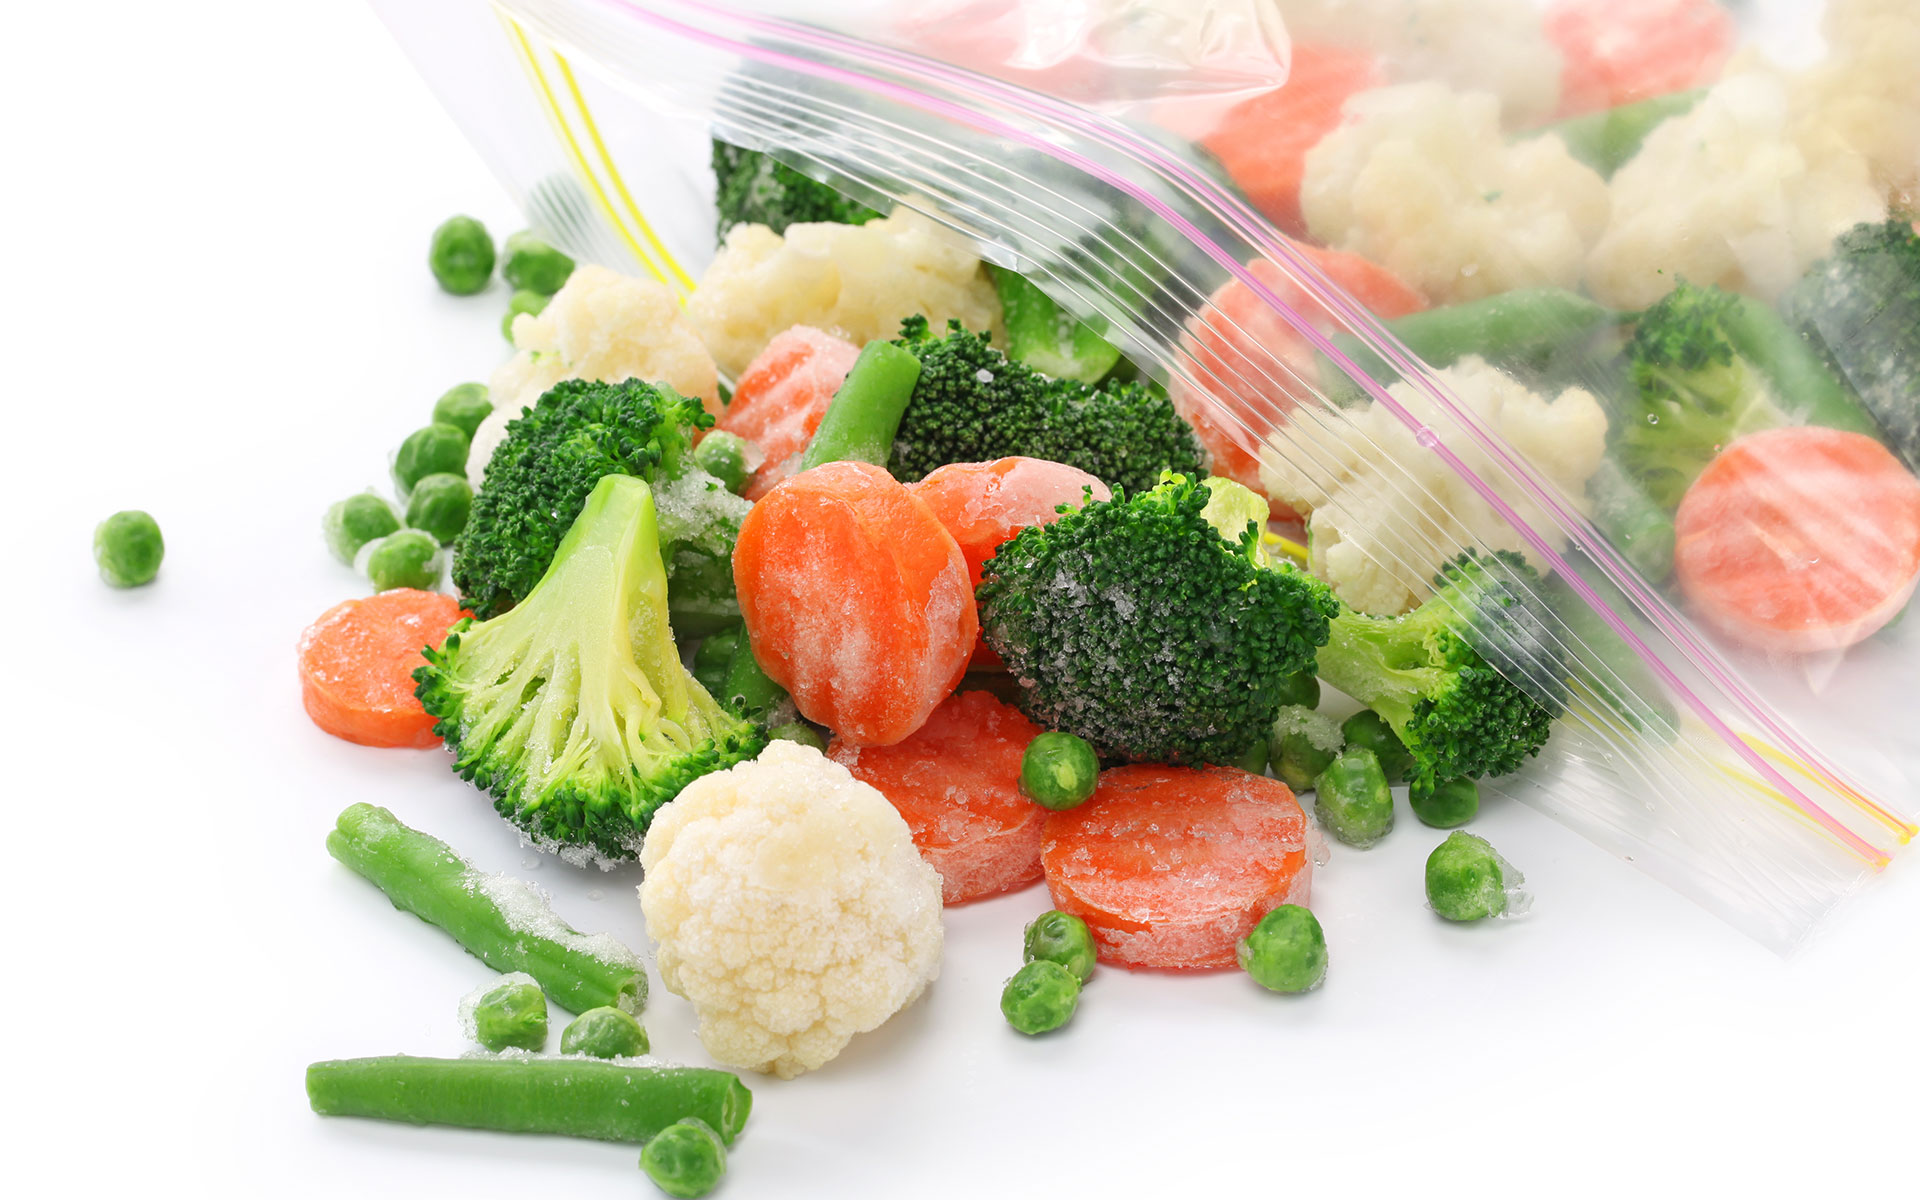 6 Easy Tips For Frozen Veggies